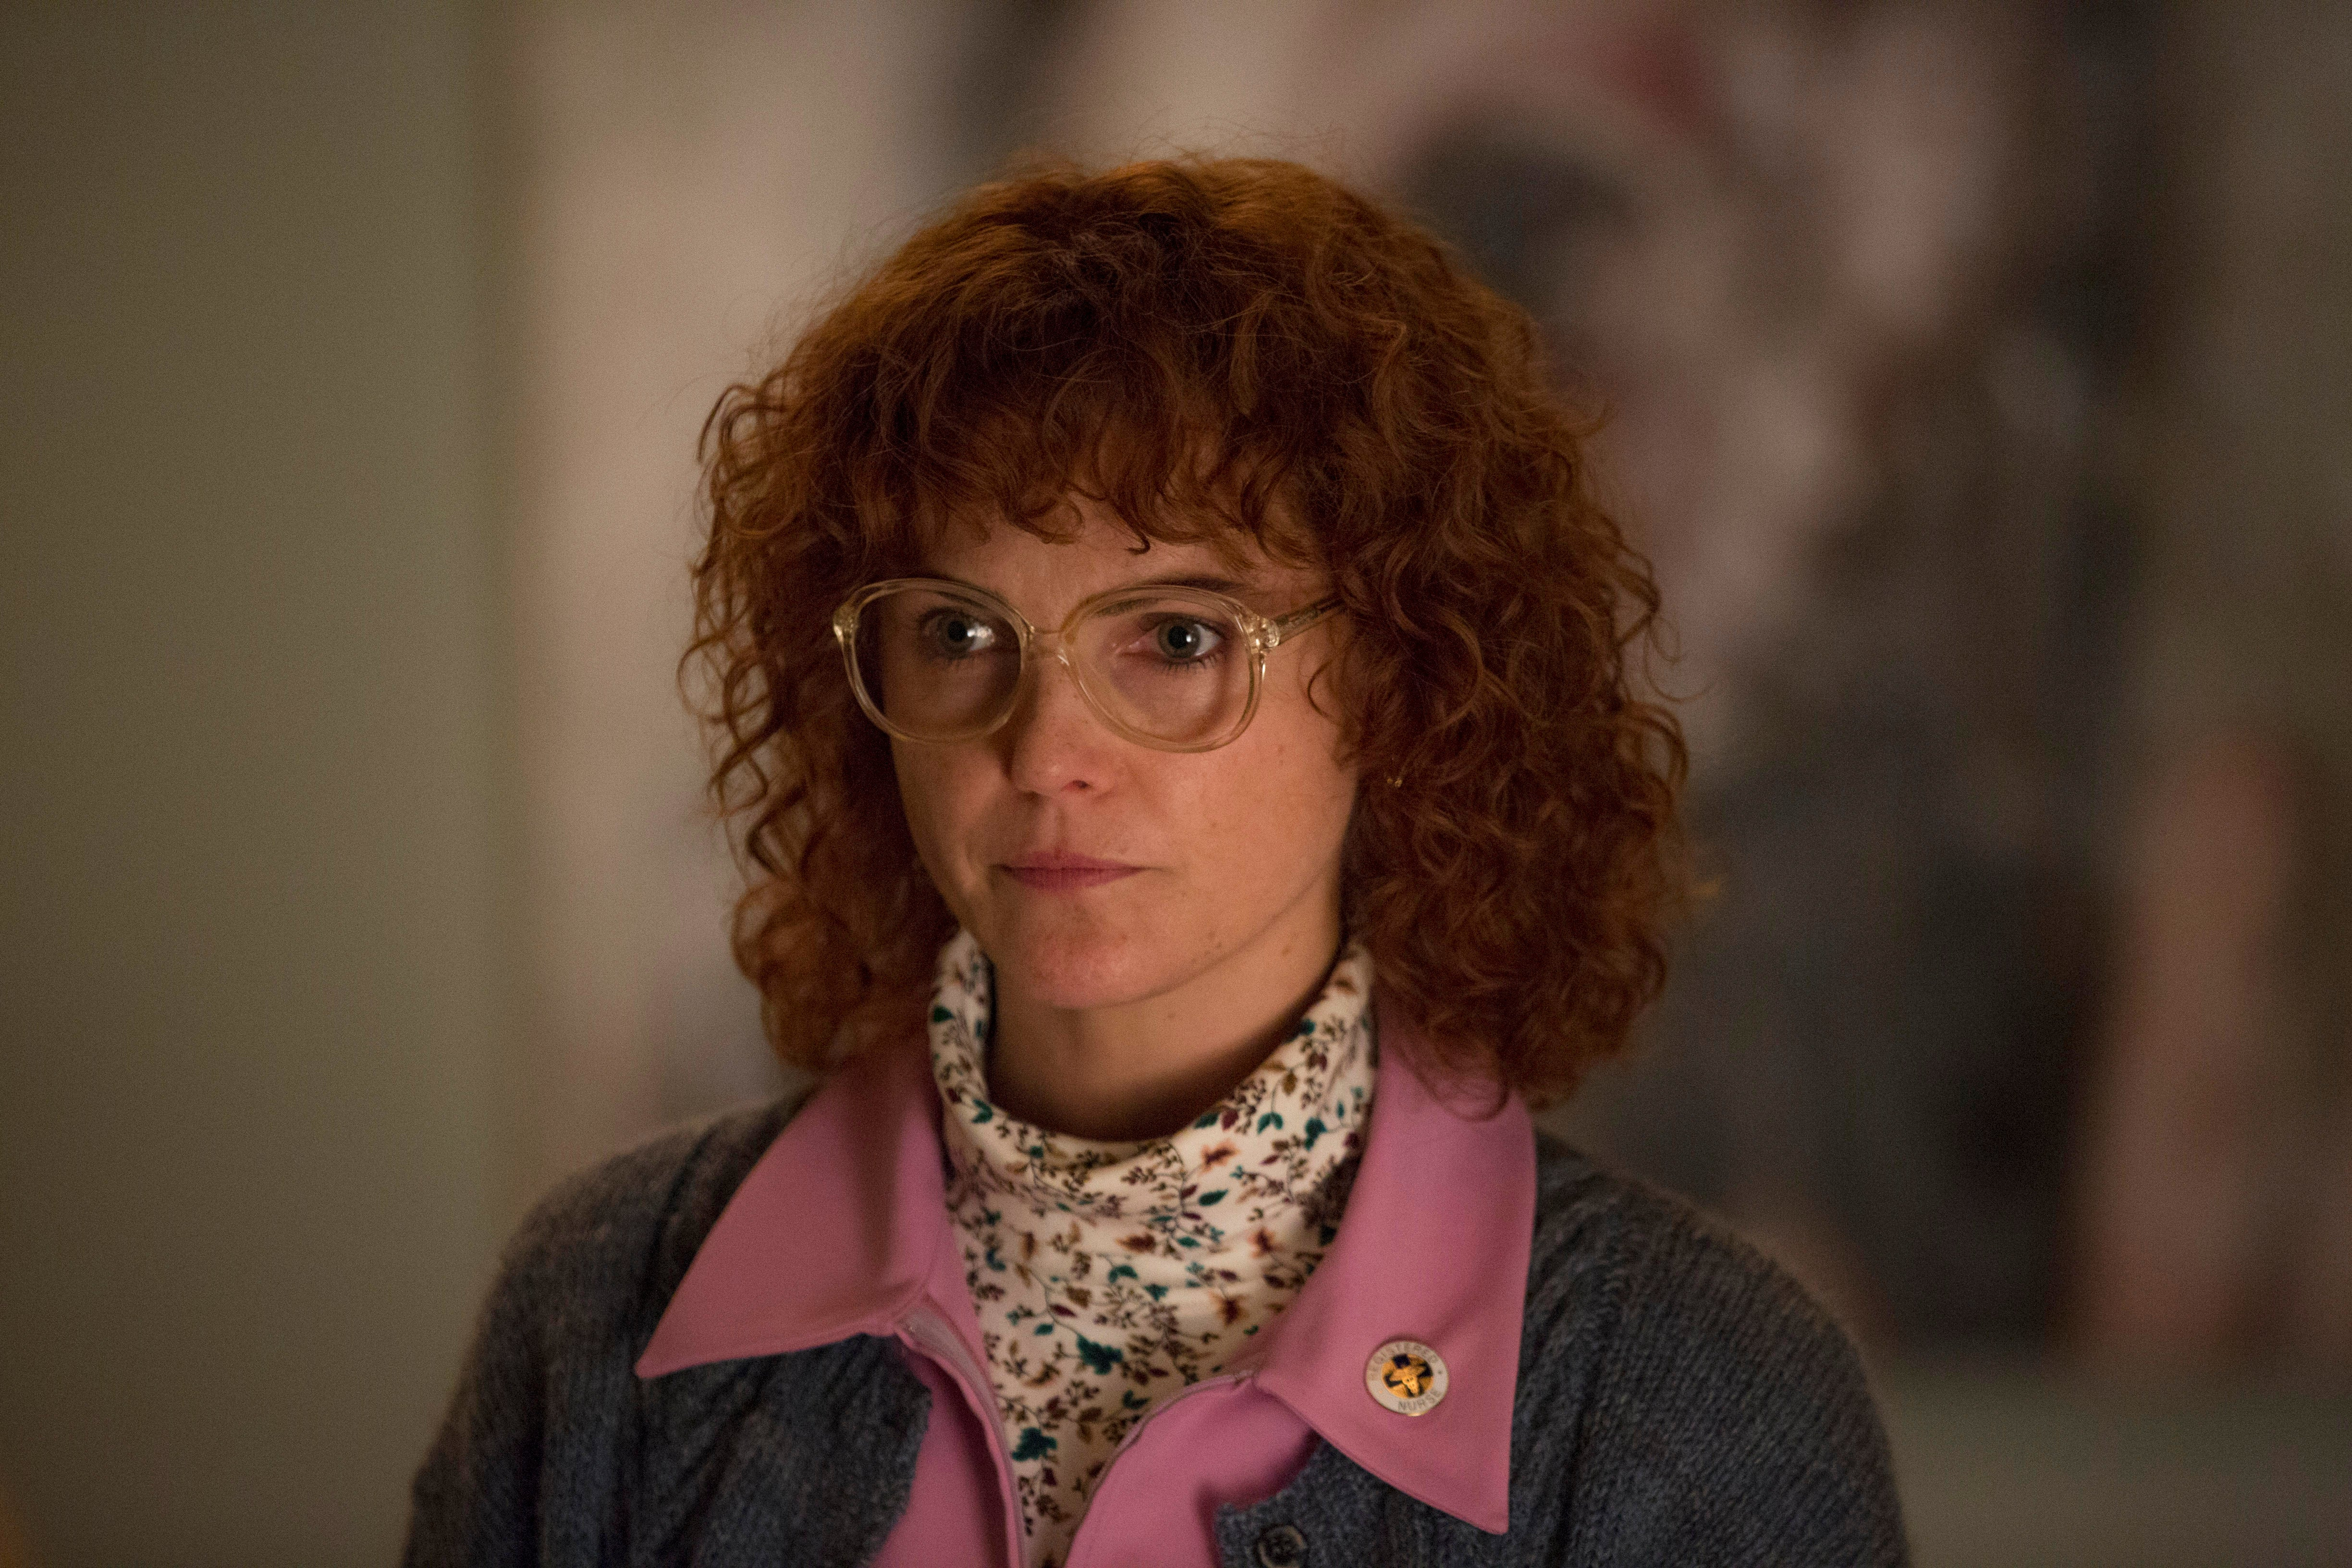 Keri Russell plays Elizabeth in The Americans. In this still, Elizabeth is in disguise as Stephanie, a dowdy home care nurse. She wears big, round glasses, a crazy-curly redhead wig, and a speckle-patterned white fluffy turtleneck under a pink-collared denim shirt.